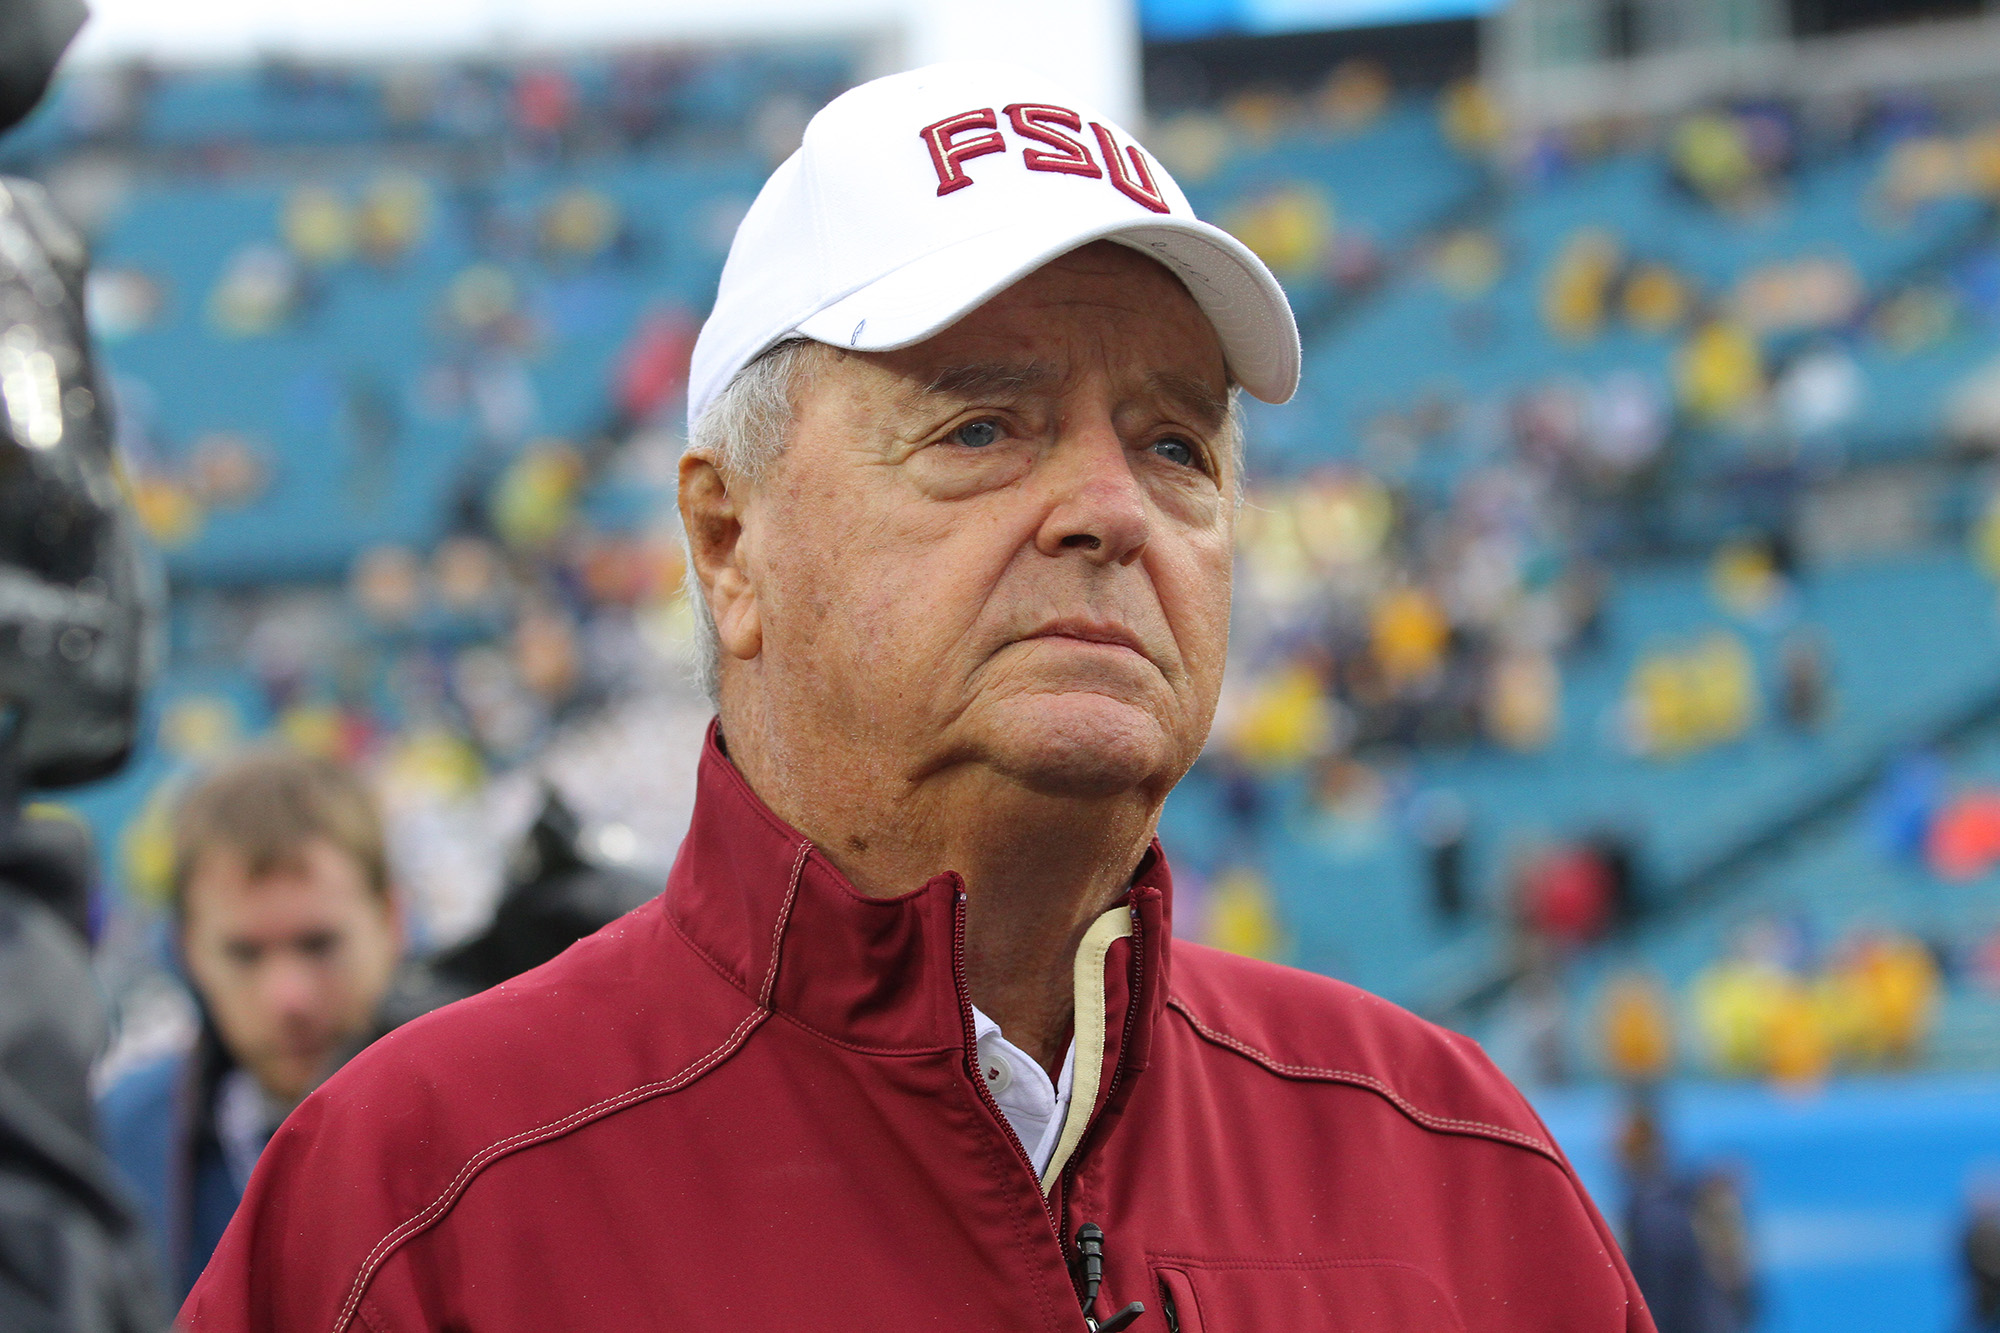 Bobby Bowden, 90, tests positive for COVID-19